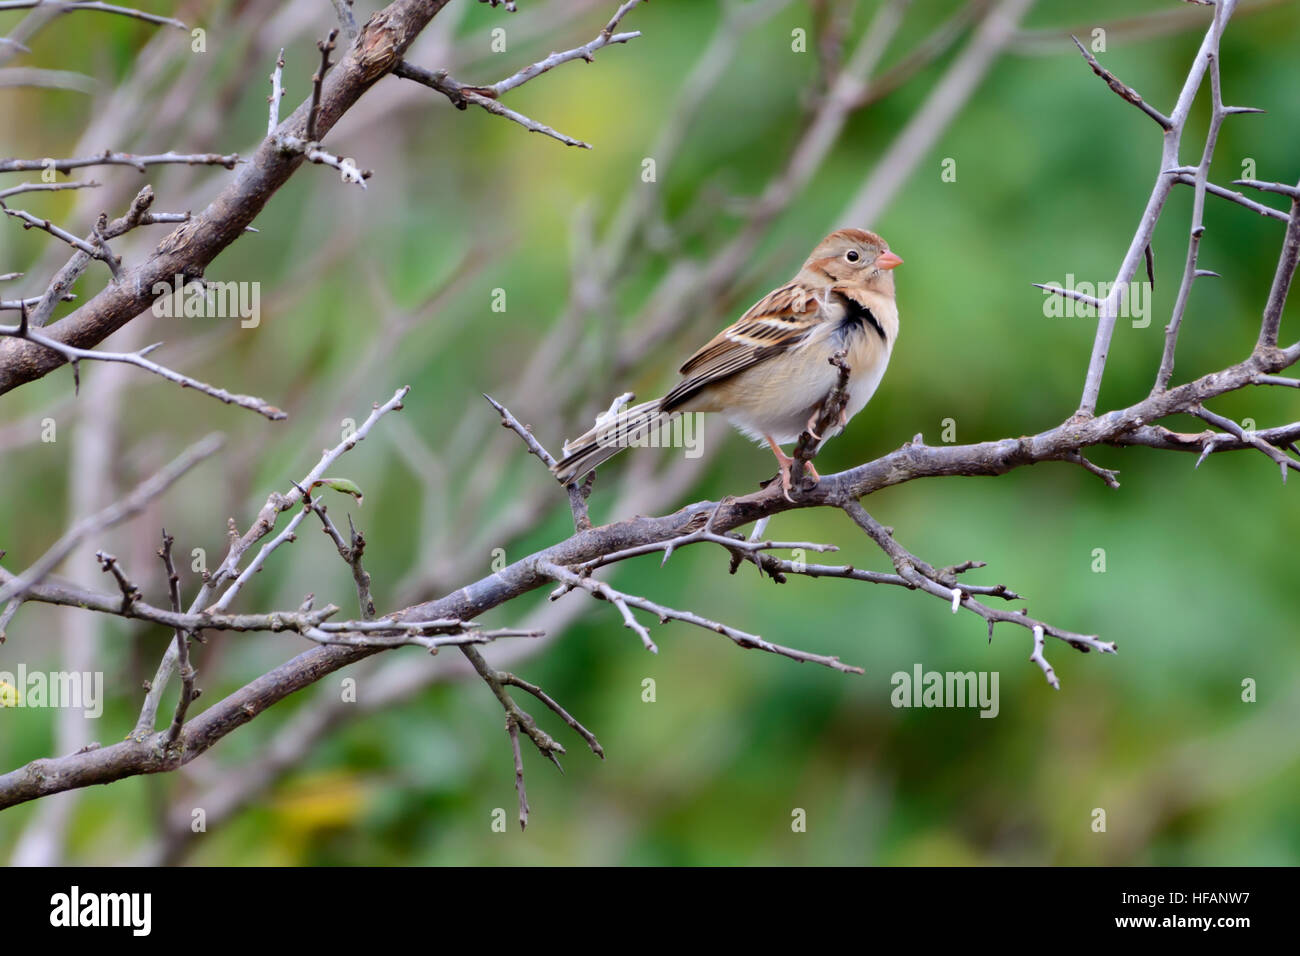 Field Sparrow (Spizella pusilla) perched on a bare branch with blurred green foliage background - Stock Image